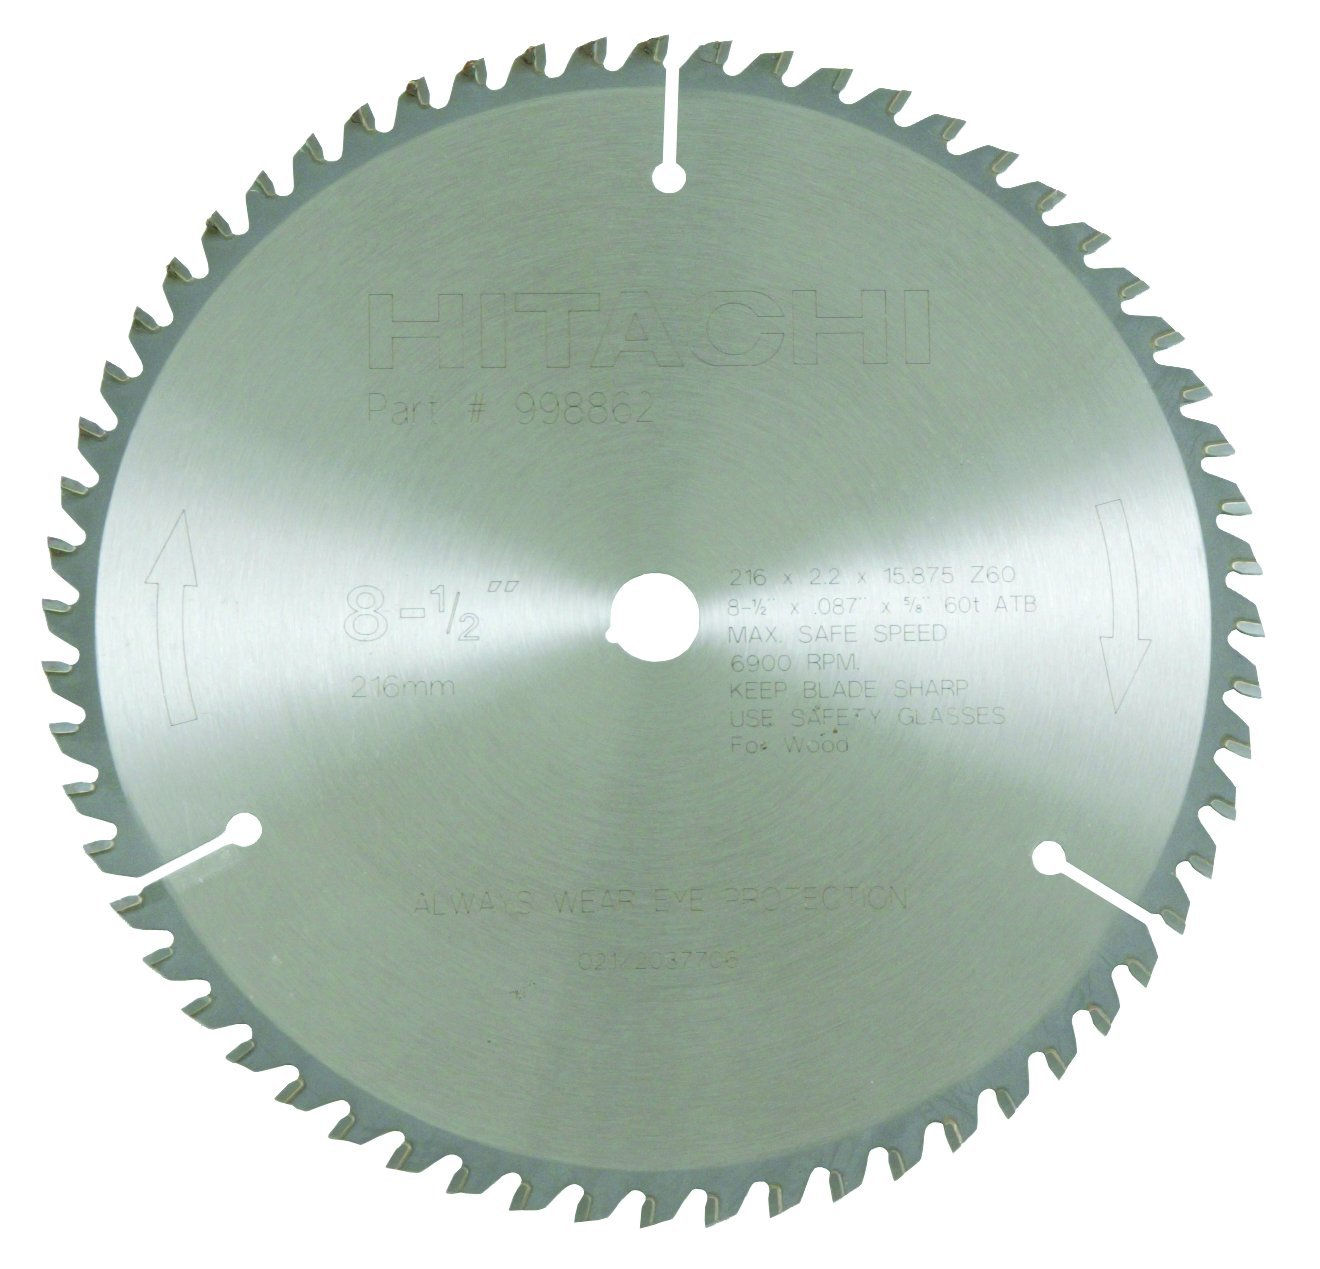 Hitachi 998862 60-Teeth Tungsten Carbide Tipped 8-1/2-Inch ATB 5/8-Inch Arbor Finish Saw Blade by Hitachi